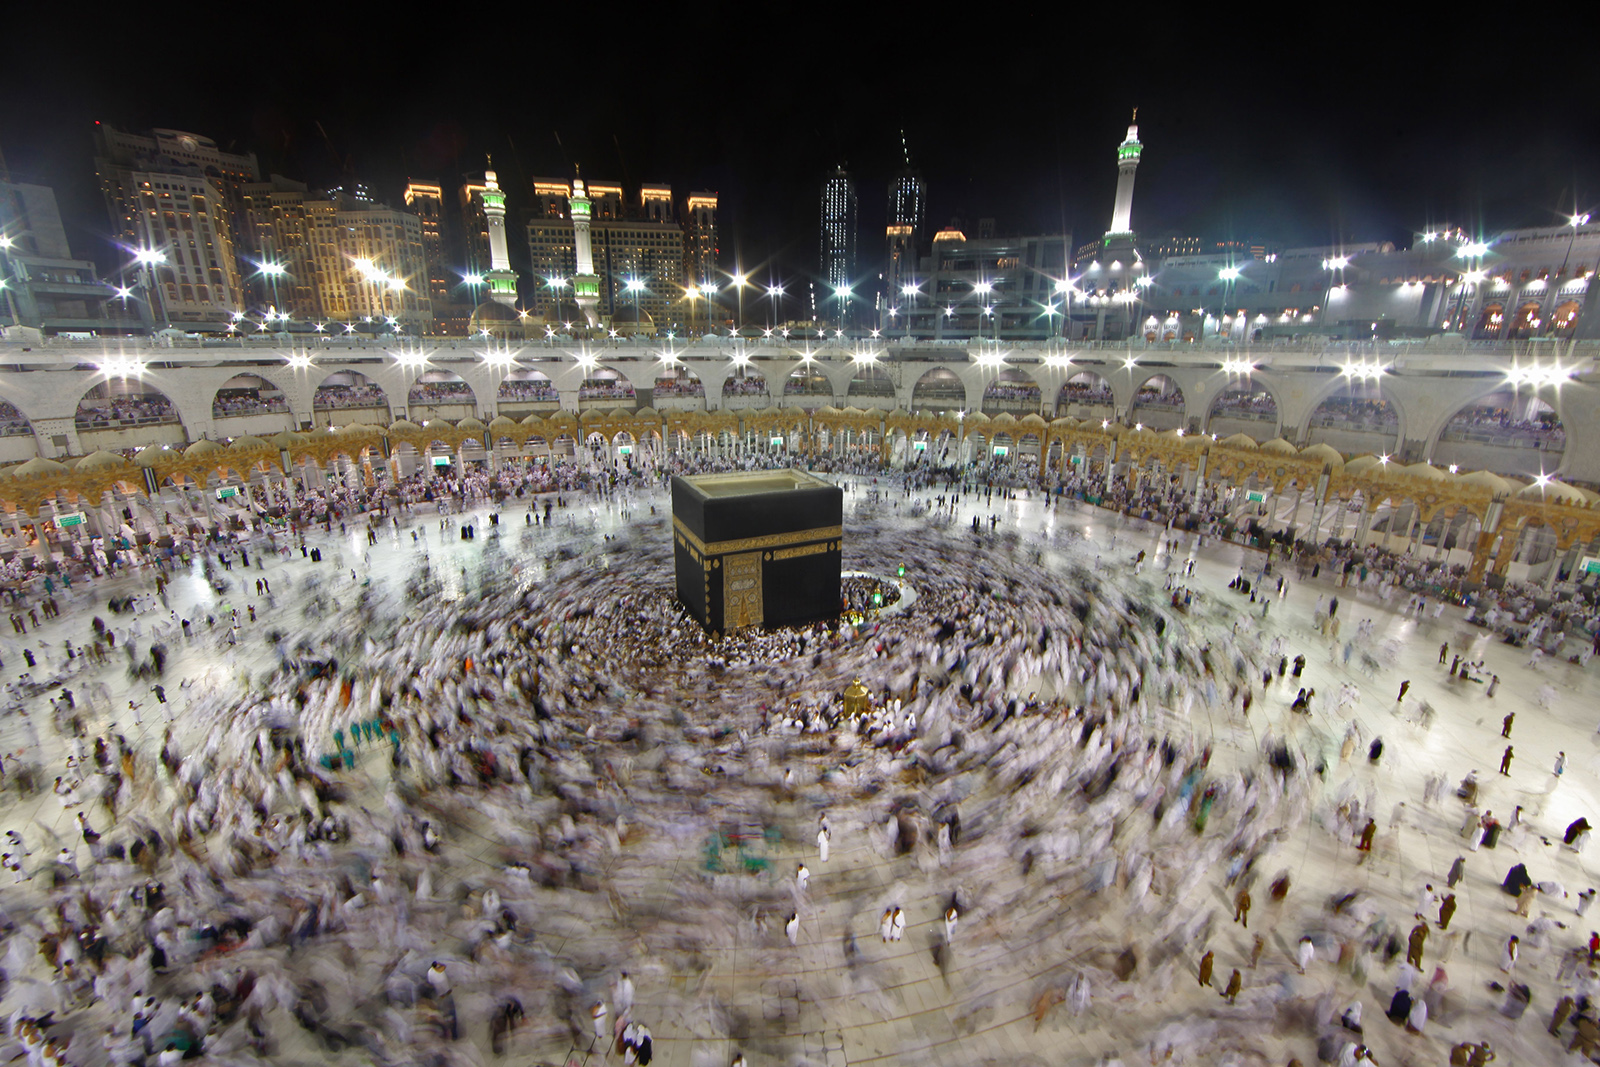 In this June 14, 2018 file photo, Muslim worshippers gather at the Grand Mosque in Islam's holiest city of Mecca as they perform the Umrah, or lesser pilgrimages, during the last week of the month of Ramadan.